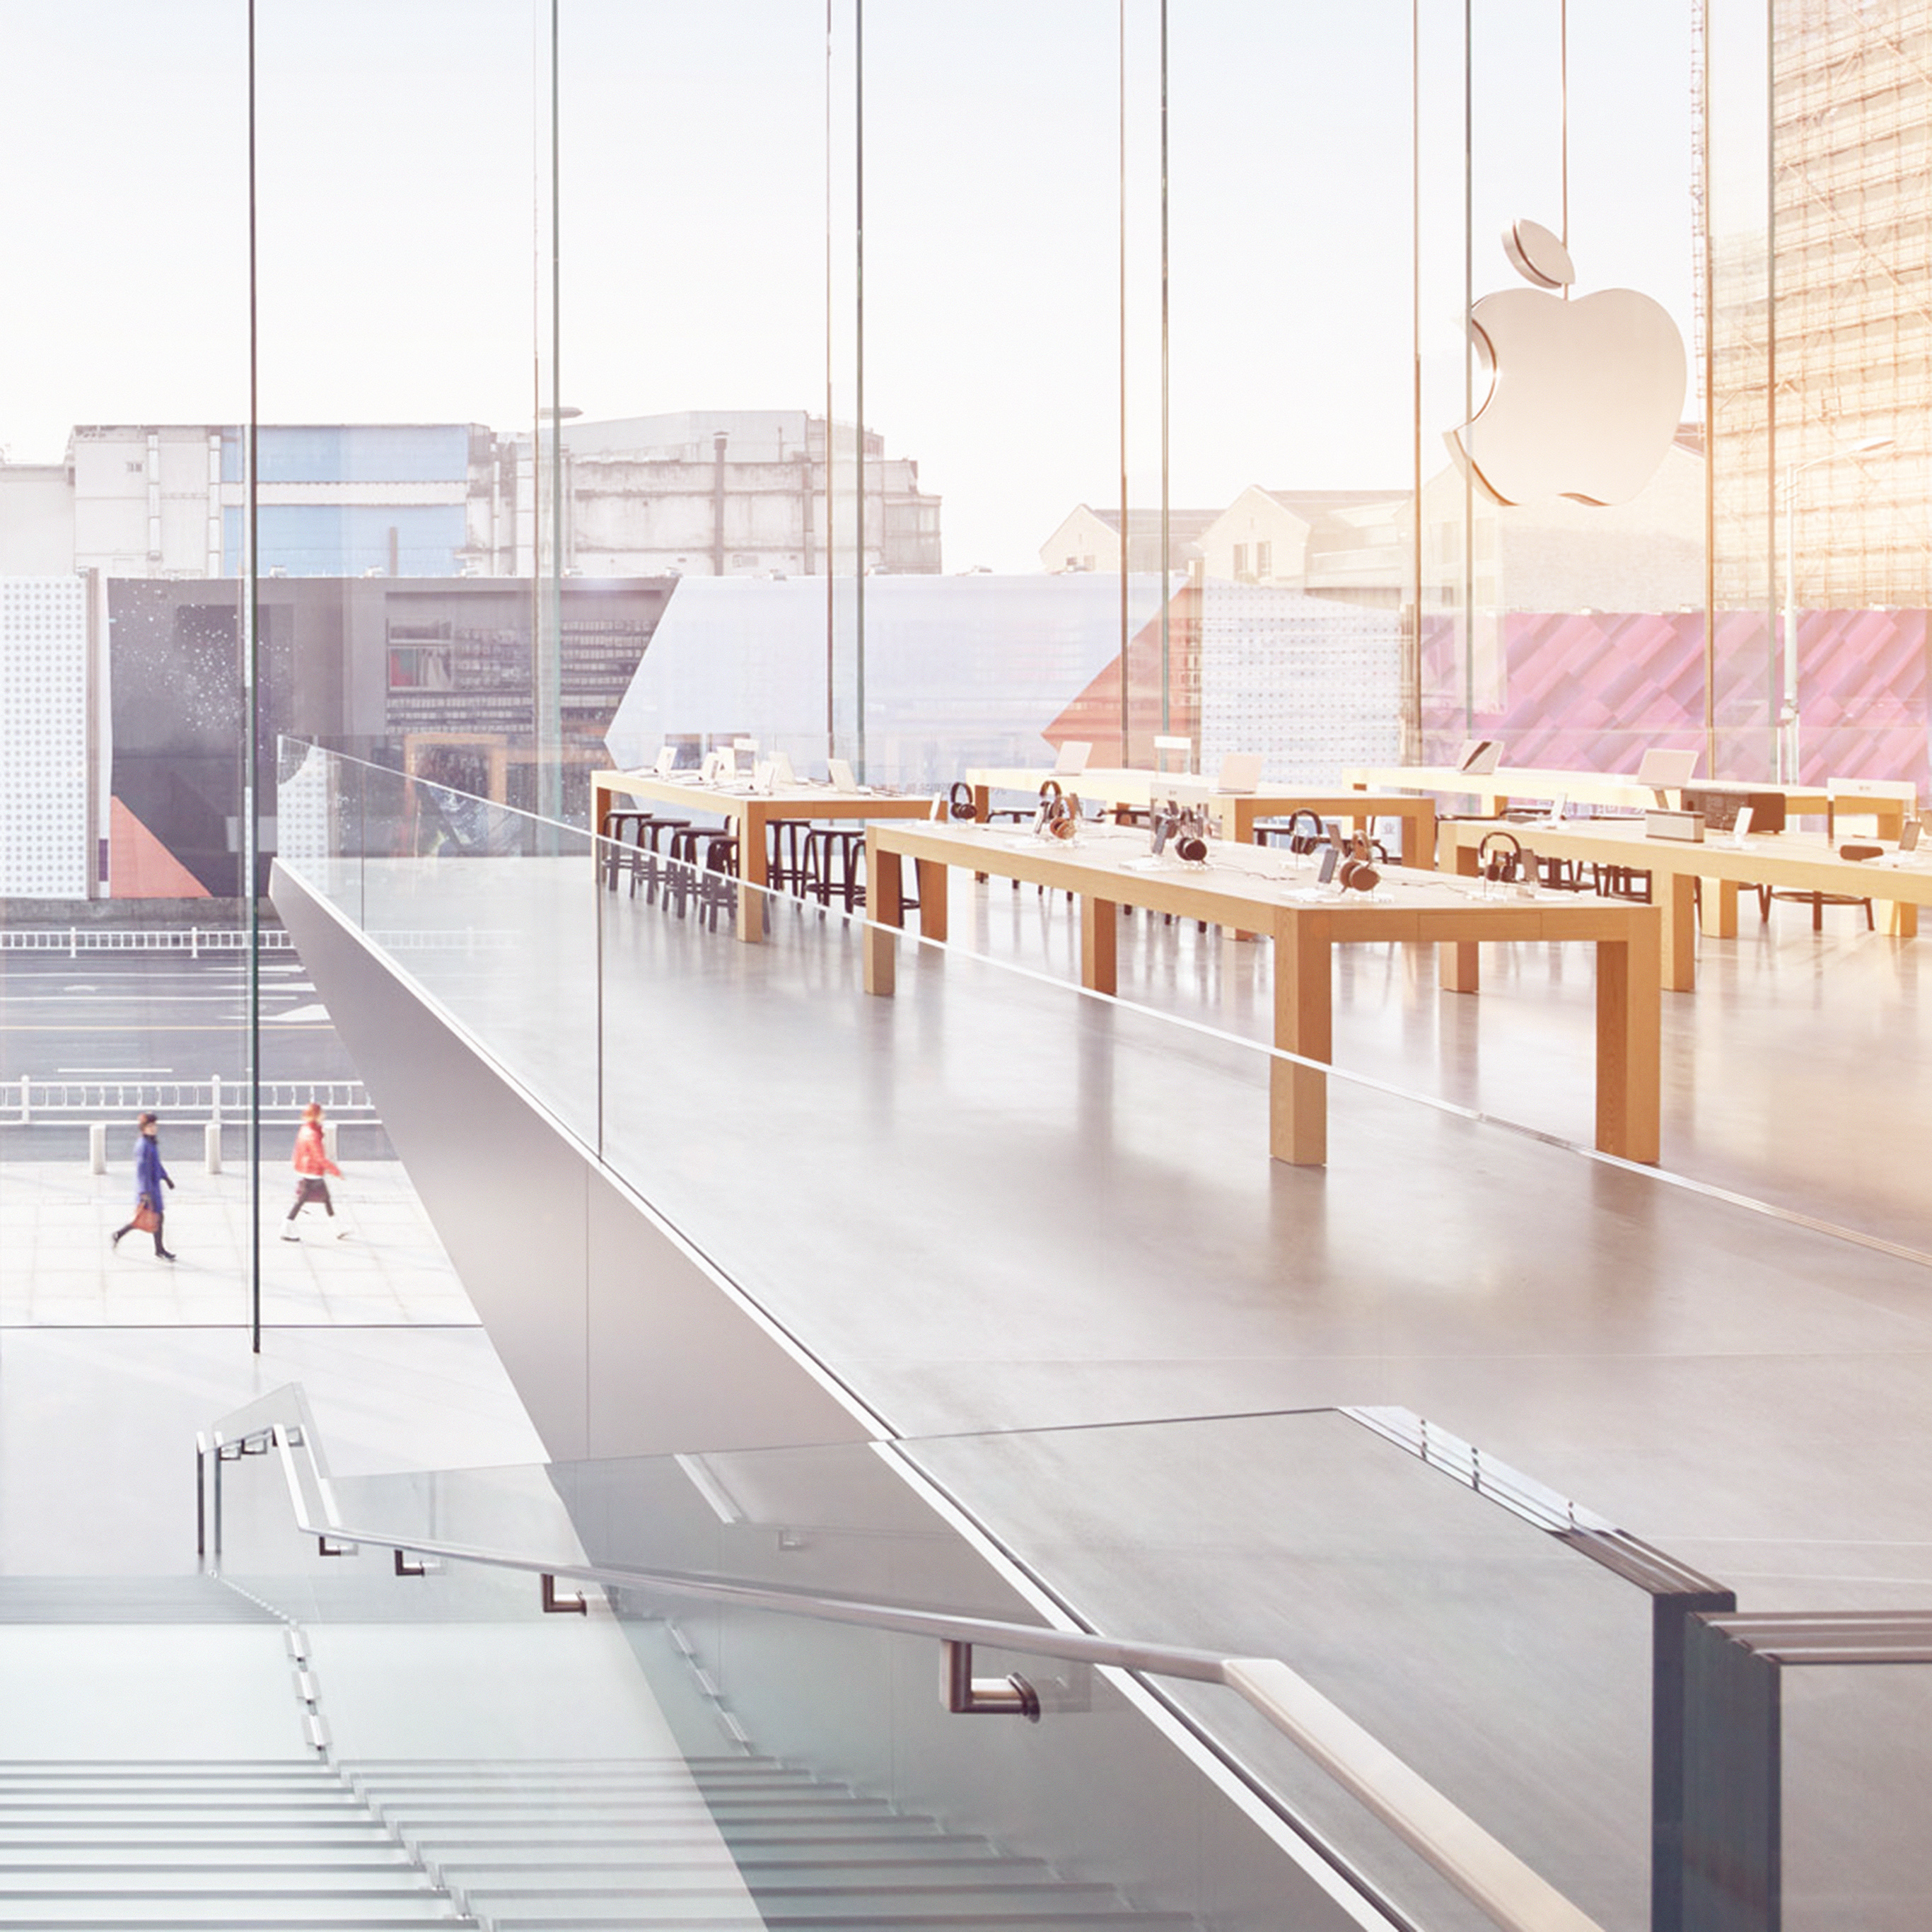 apple-shop-store-interior-city-40-wallpaper